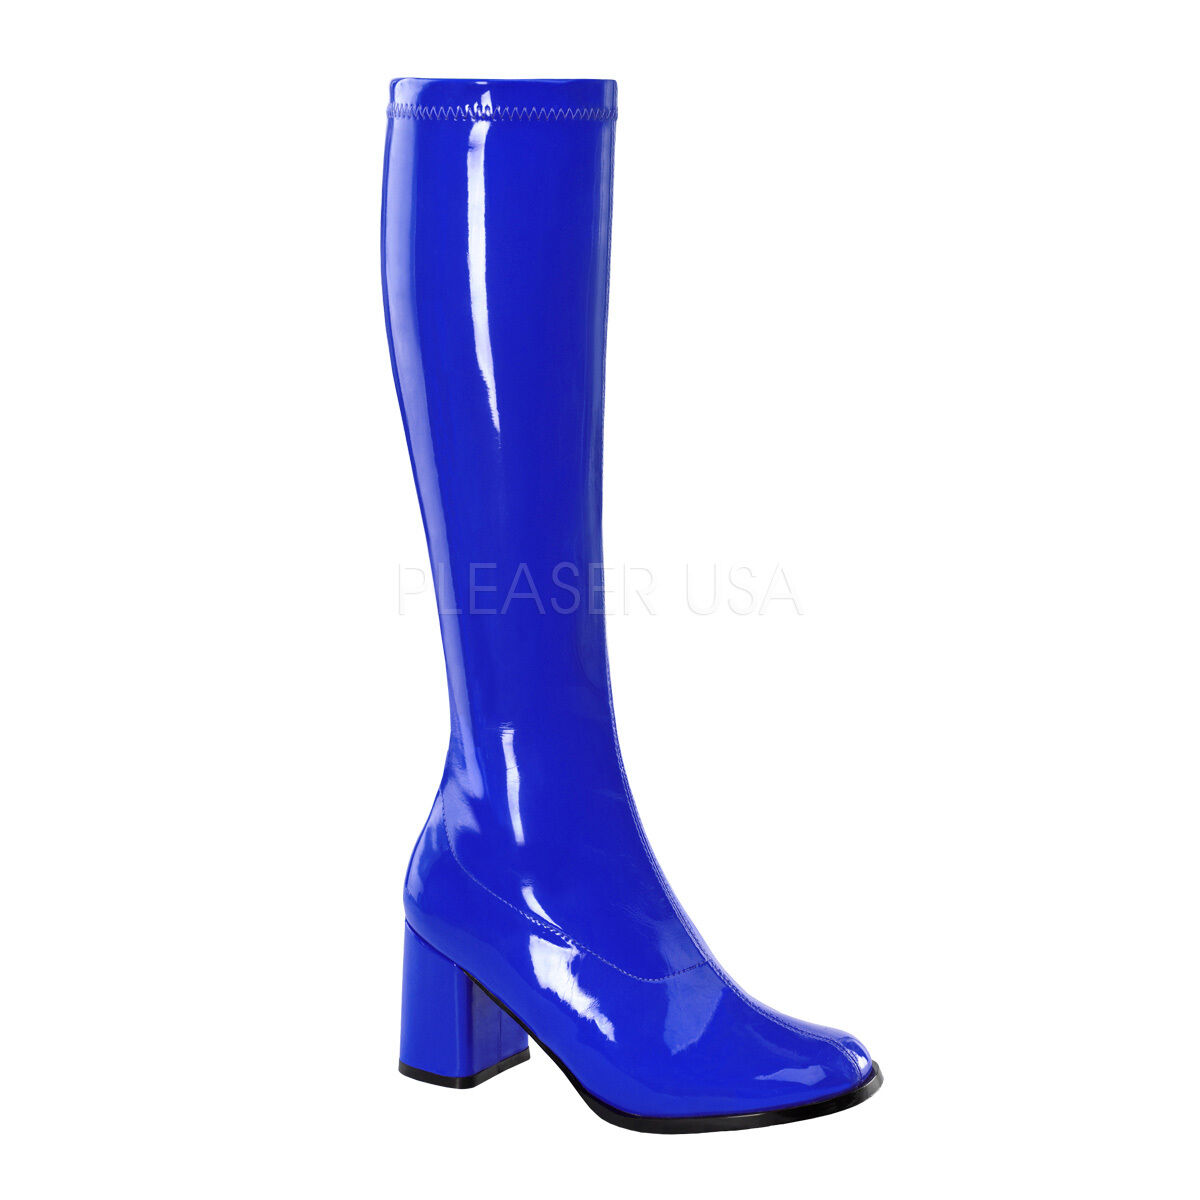 PLEASER FUNTASMA GOGO-300 NAVY BLUE PATENT STRETCH 70'S KNEE HIGH BOOTS